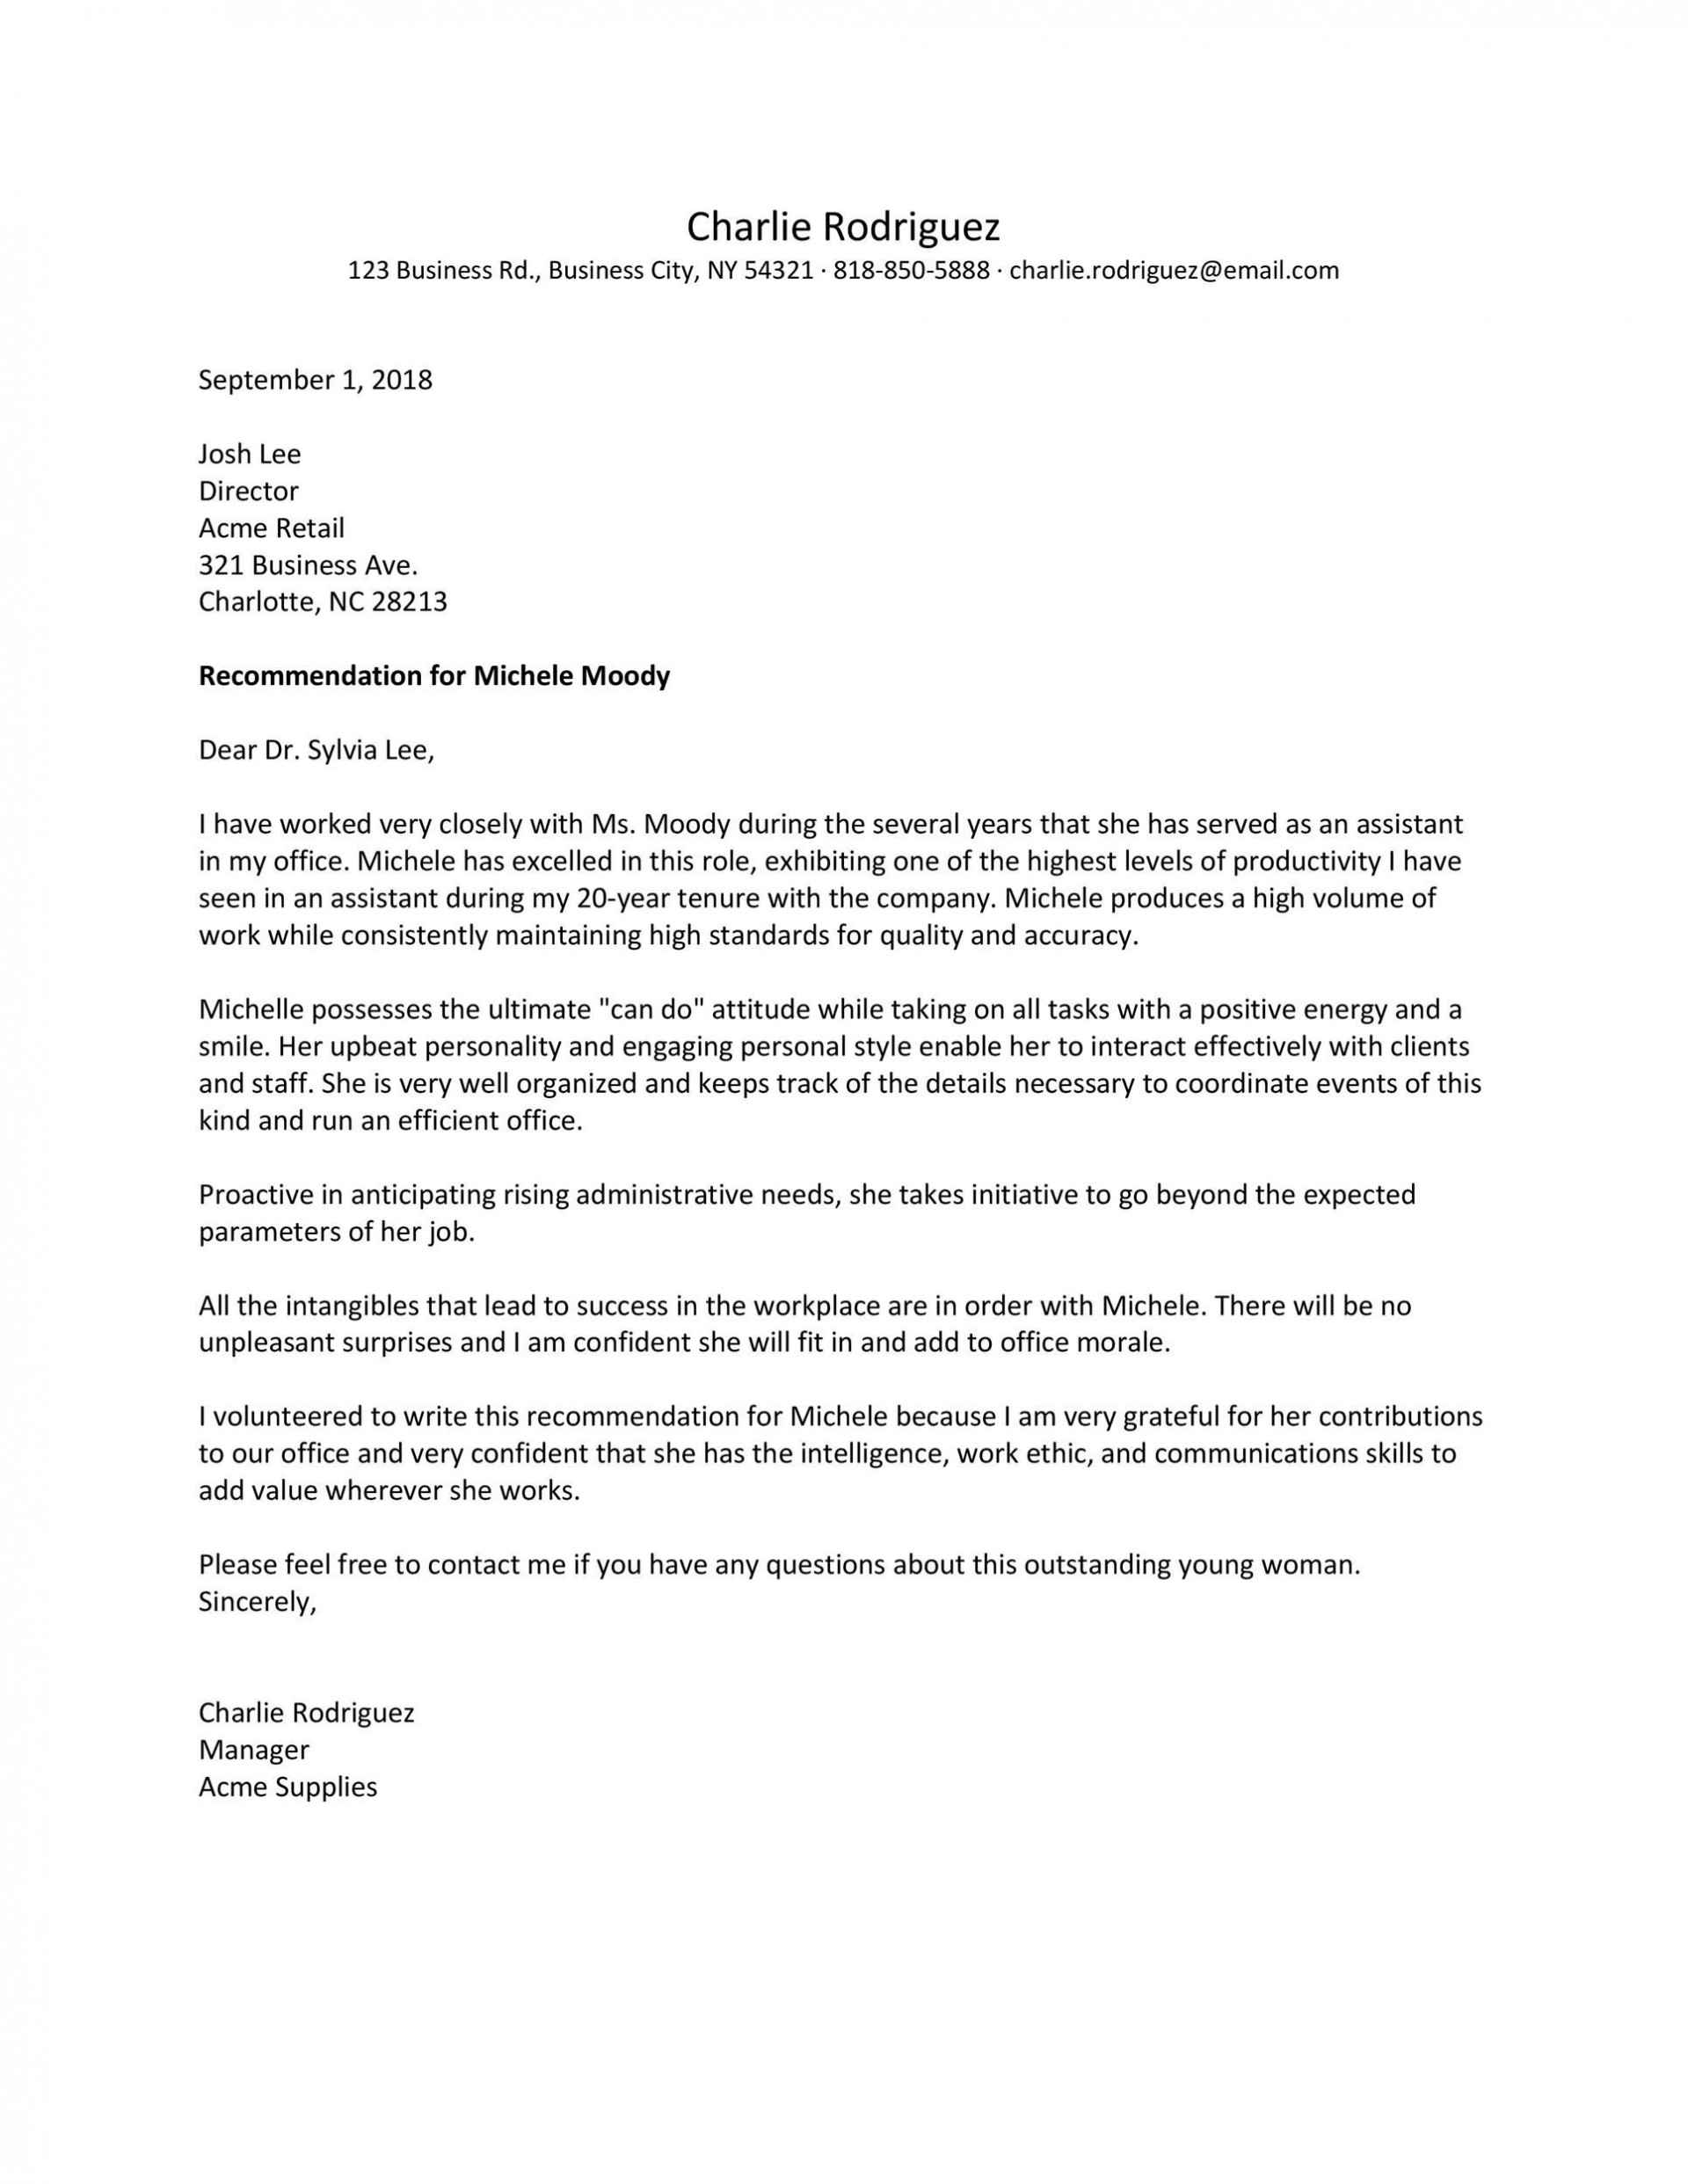 006 Stunning Free Reference Letter Template Concept  For Employment Personal Recommendation1920